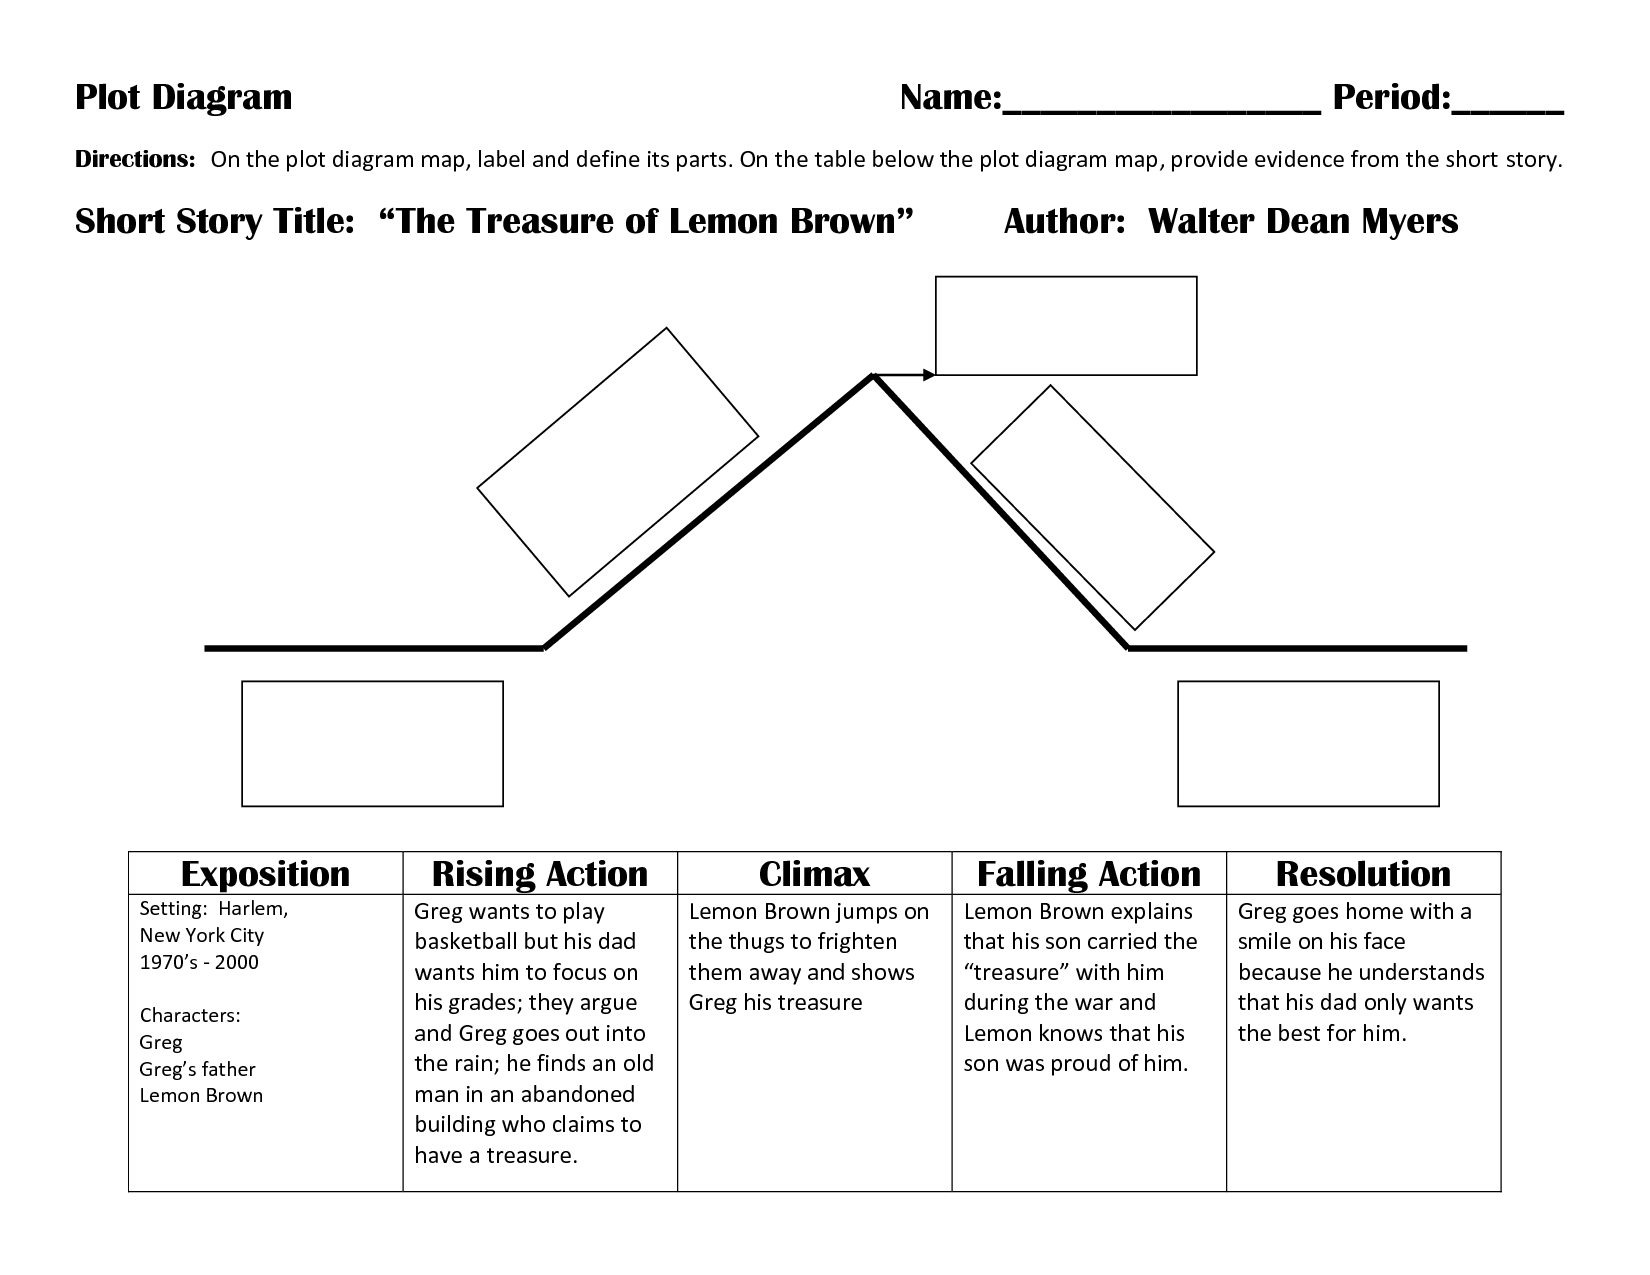 The Treasure Of Lemon Brown Plot Diagram